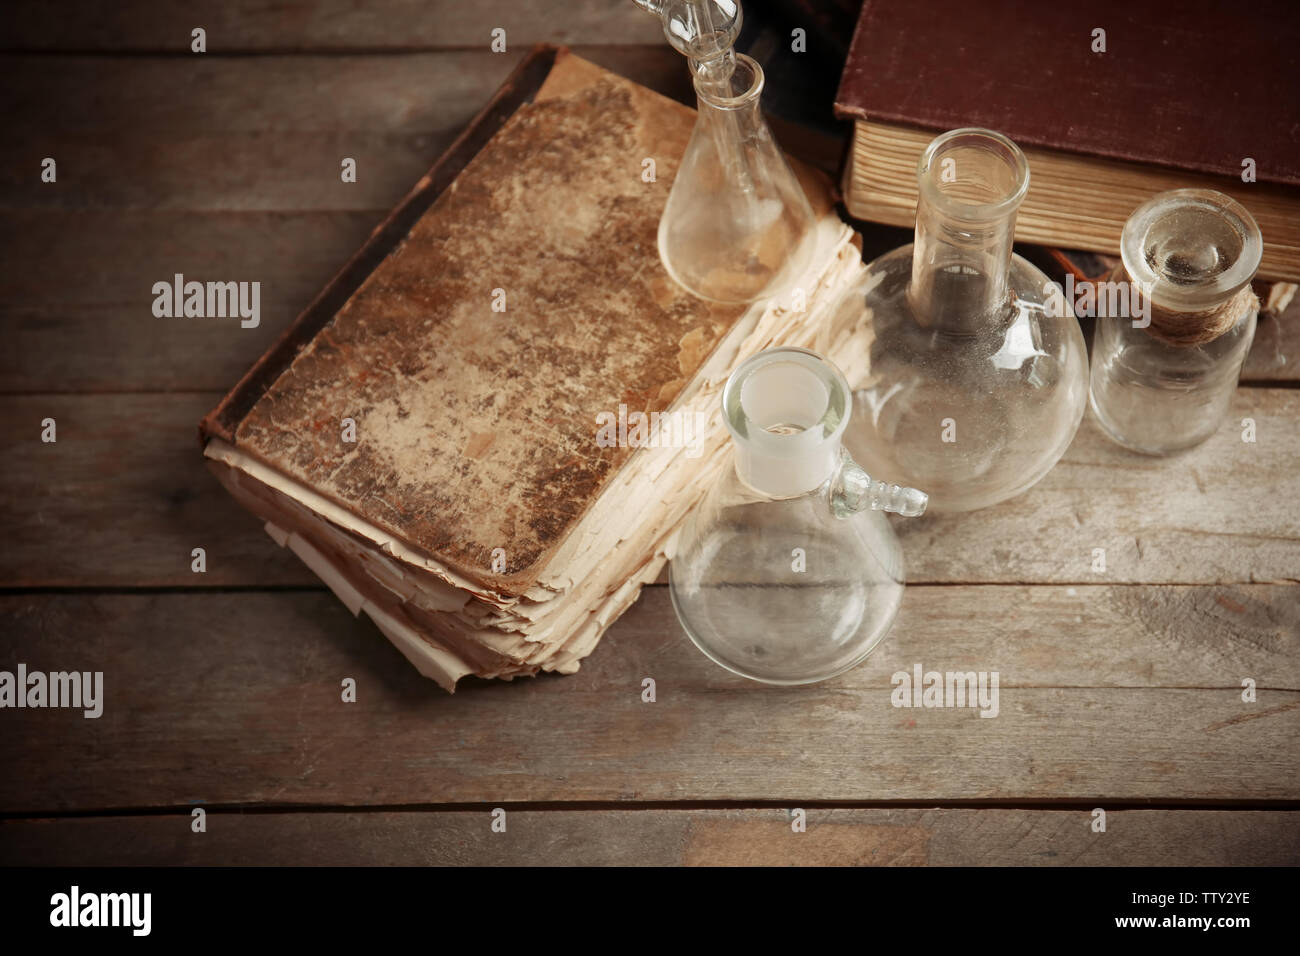 Glass flasks and old books on wooden background, closeup - Stock Image